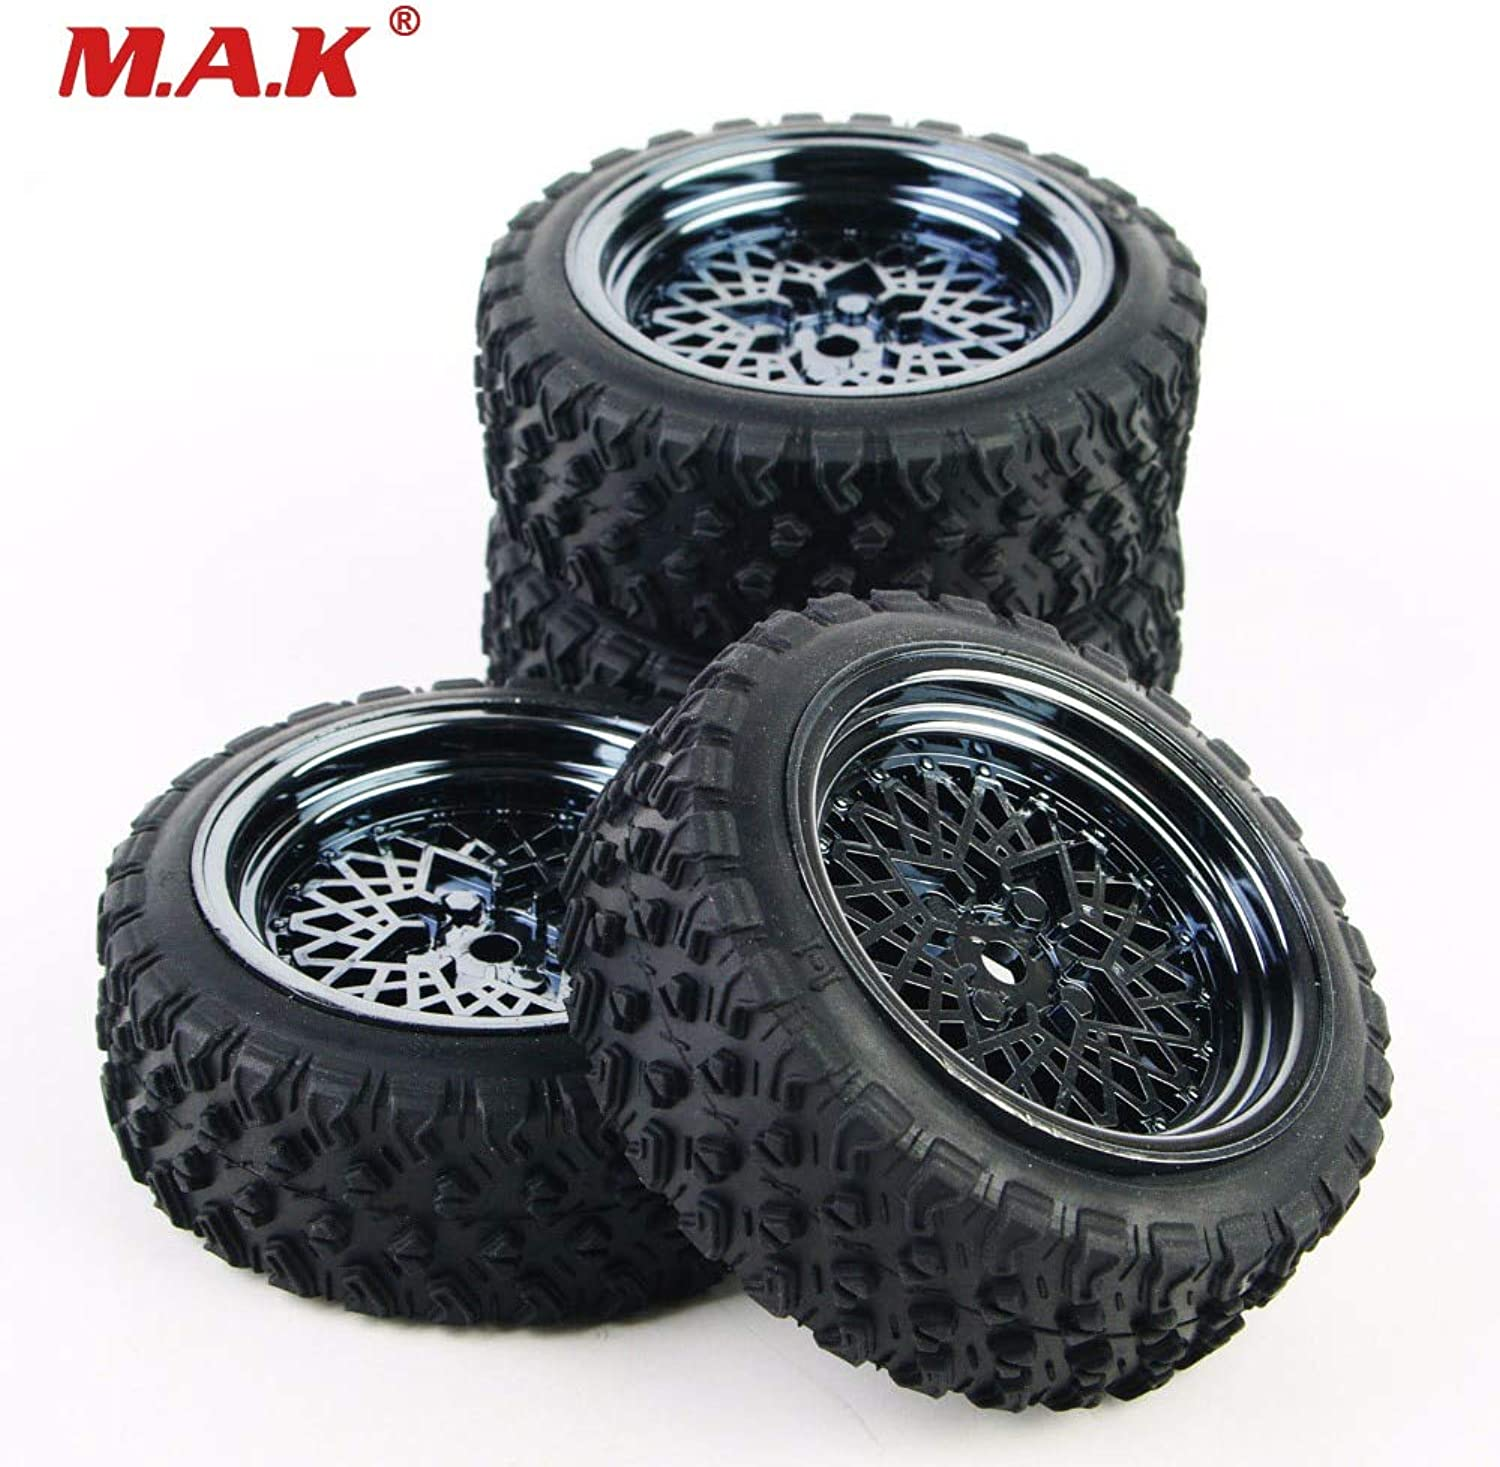 Generic 62mm 4Pcs 1 10 Scale Rubber Tire Rim Wheel Set 12mm Hex for HSP HPI RC 1 10 Rally Racing Off Road Car Model Accessory